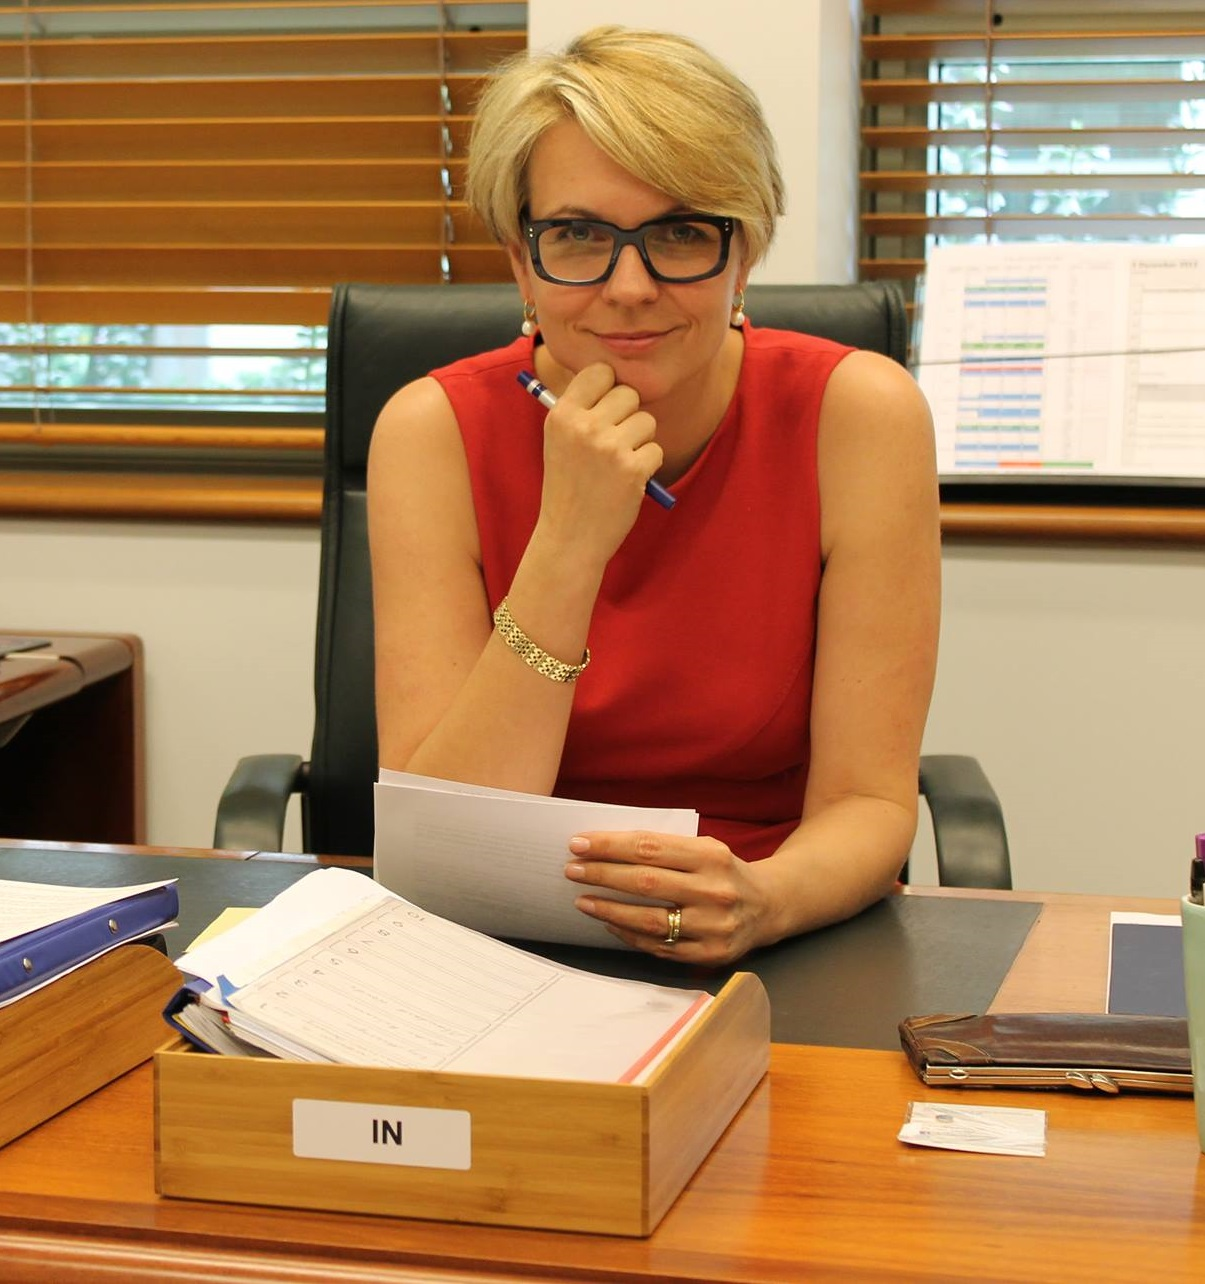 "Tanya Plibersek on Labor's gender equality strategy: ""A Labor Government will deliver a National Gender Equality Strategy that will set targets for change, drive measurable action to tackle inequality, and we'll report on Australia's progress through an annual update to the Parliament."" Photo supplied."